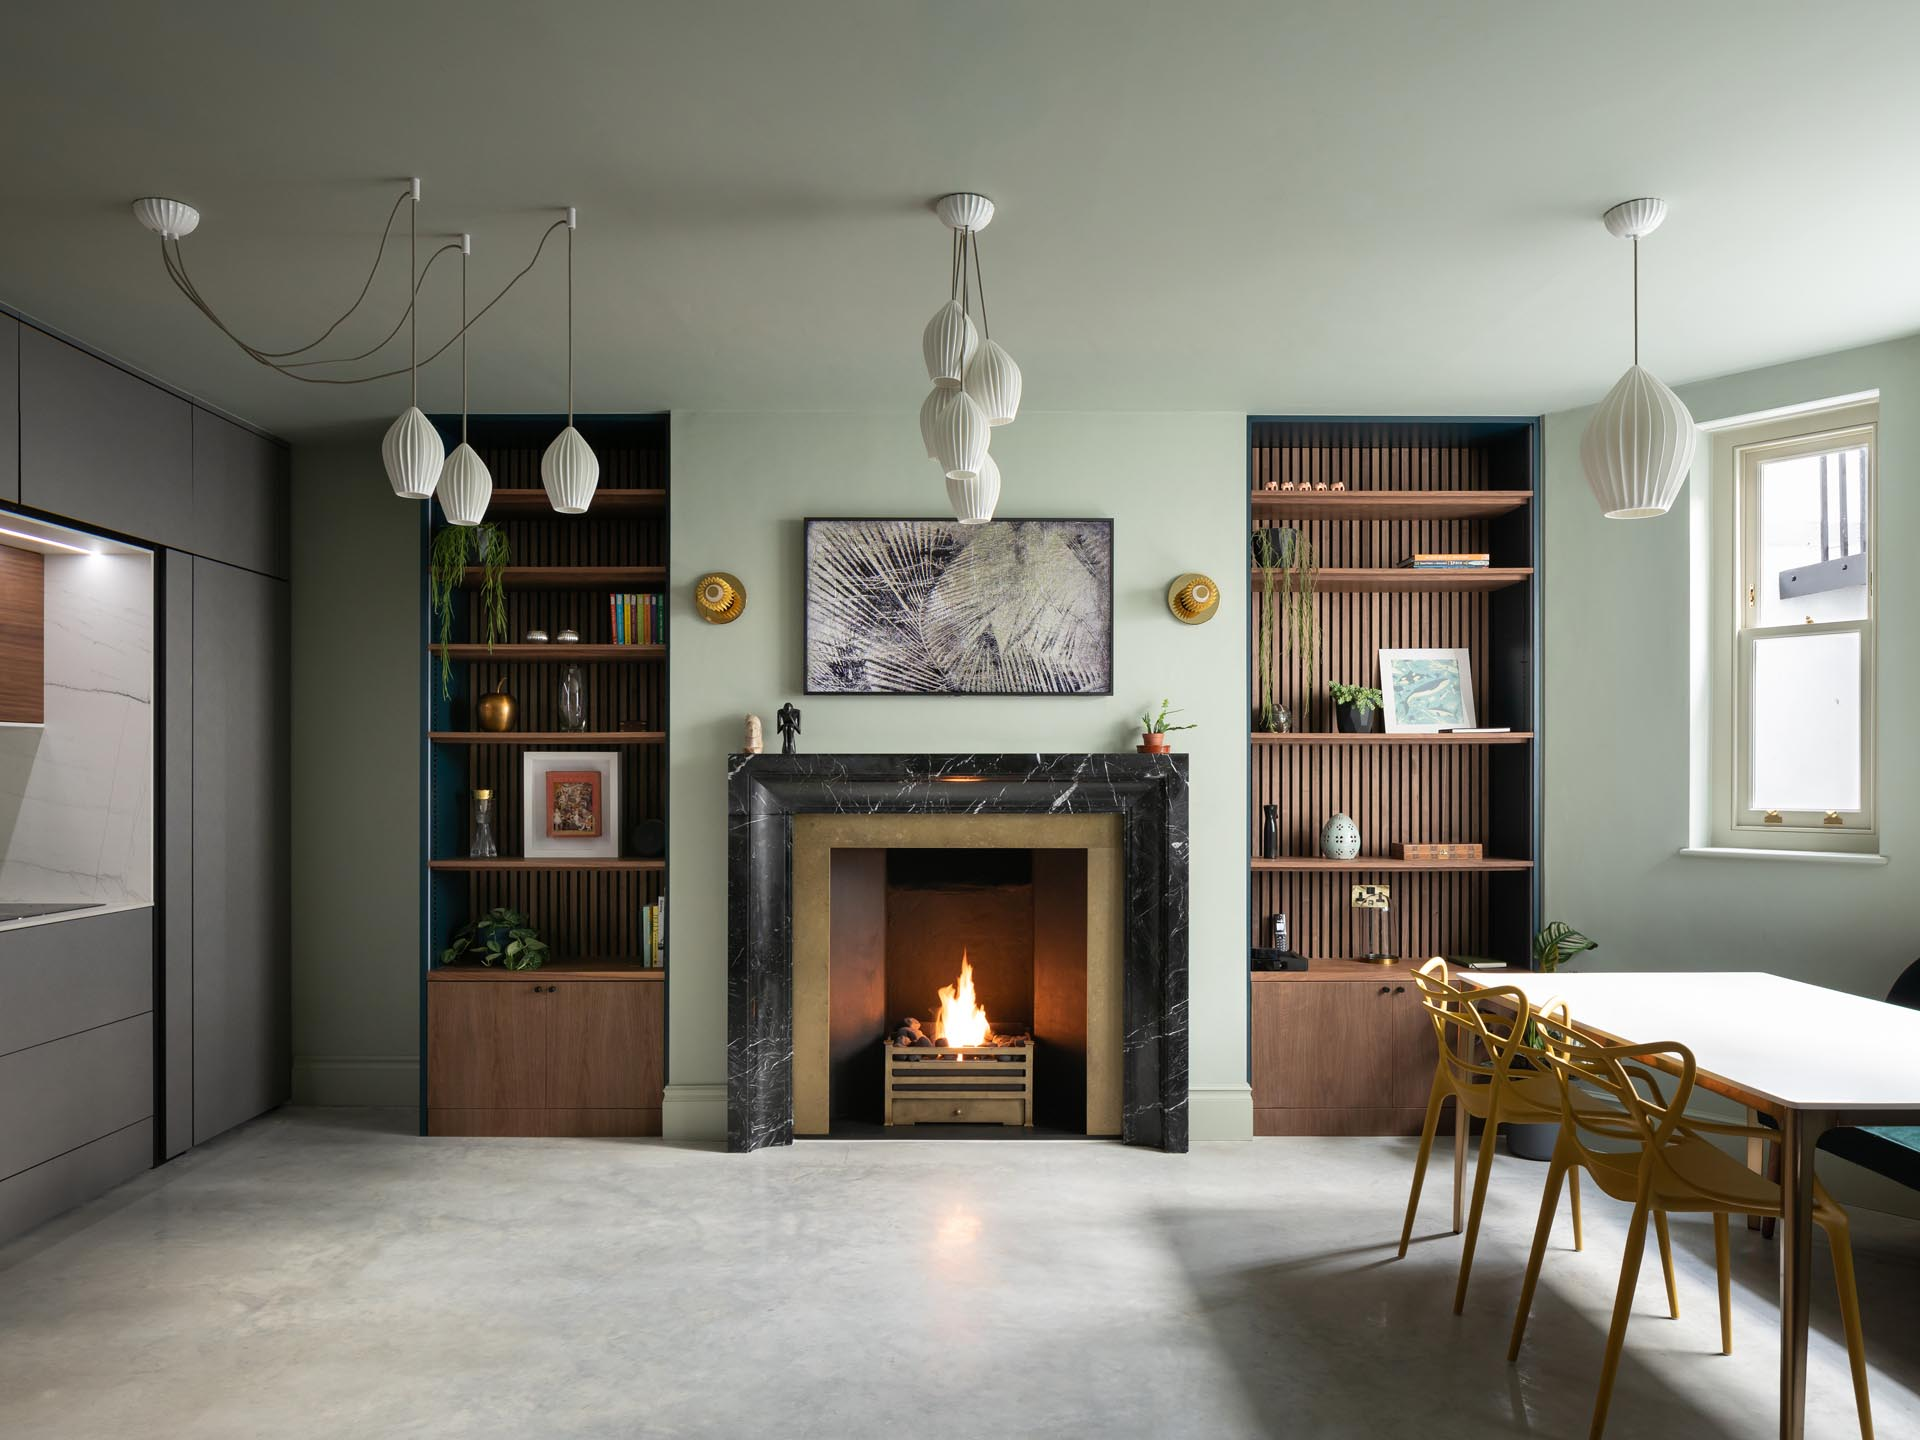 White lighting hangs from the ceiling, while a fireplace is flanked with floor-to-ceiling wood bookshelves.